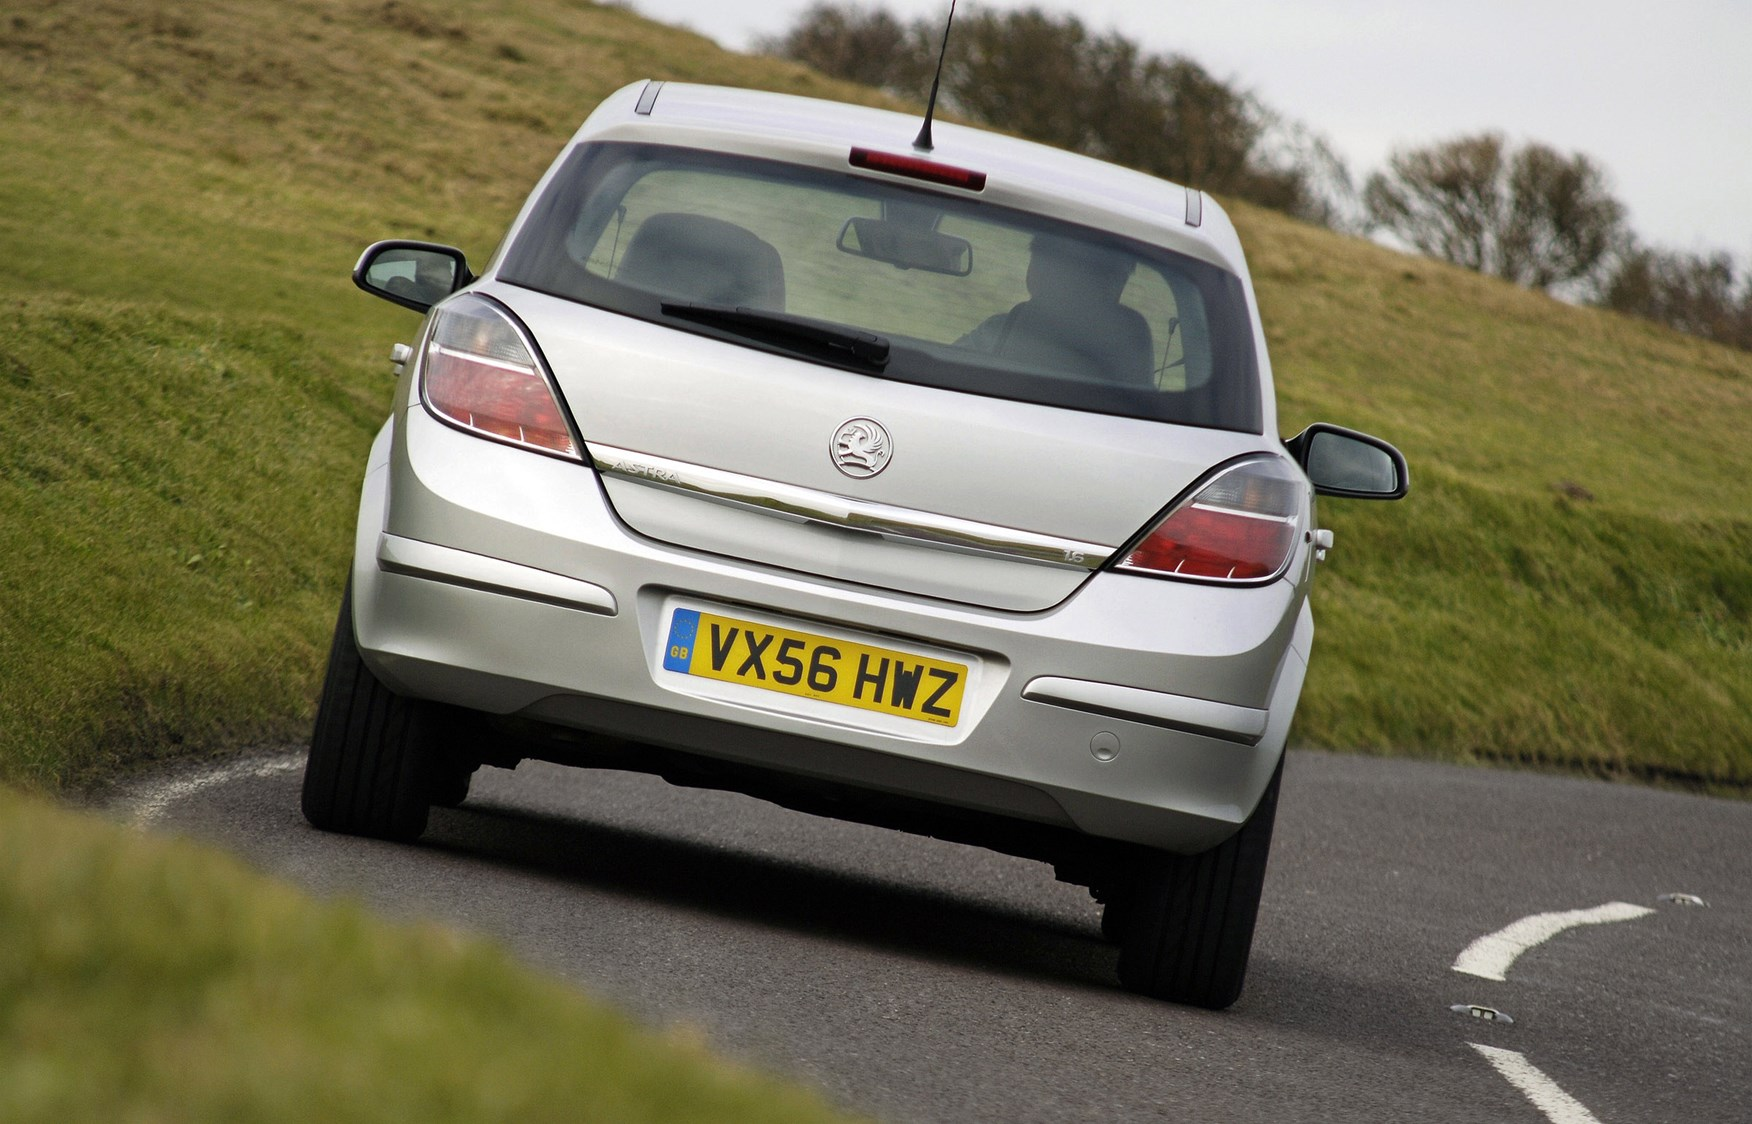 Vauxhall Astra Hatchback 2004 2010 Features Equipment And Fuse Box 2006 Accessories Parkers